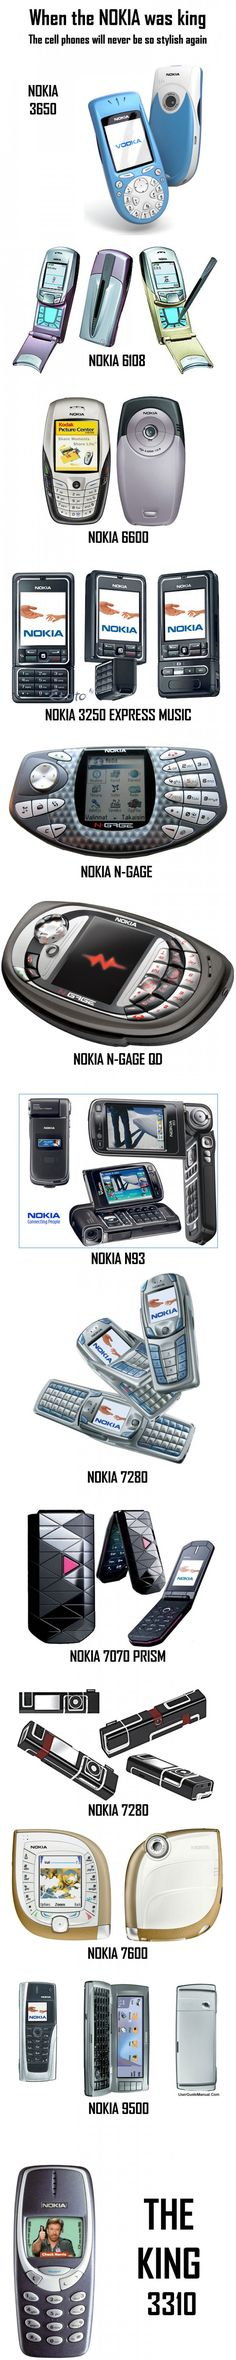 Some of the stylish Nokia mobile phones that were ahead of their times in design. Dog Gadgets, Clever Gadgets, High Tech Gadgets, Technology Gadgets, Geek Gadgets, Mobile Technology, Electronics Gadgets, Mobiles, Gadget Watches